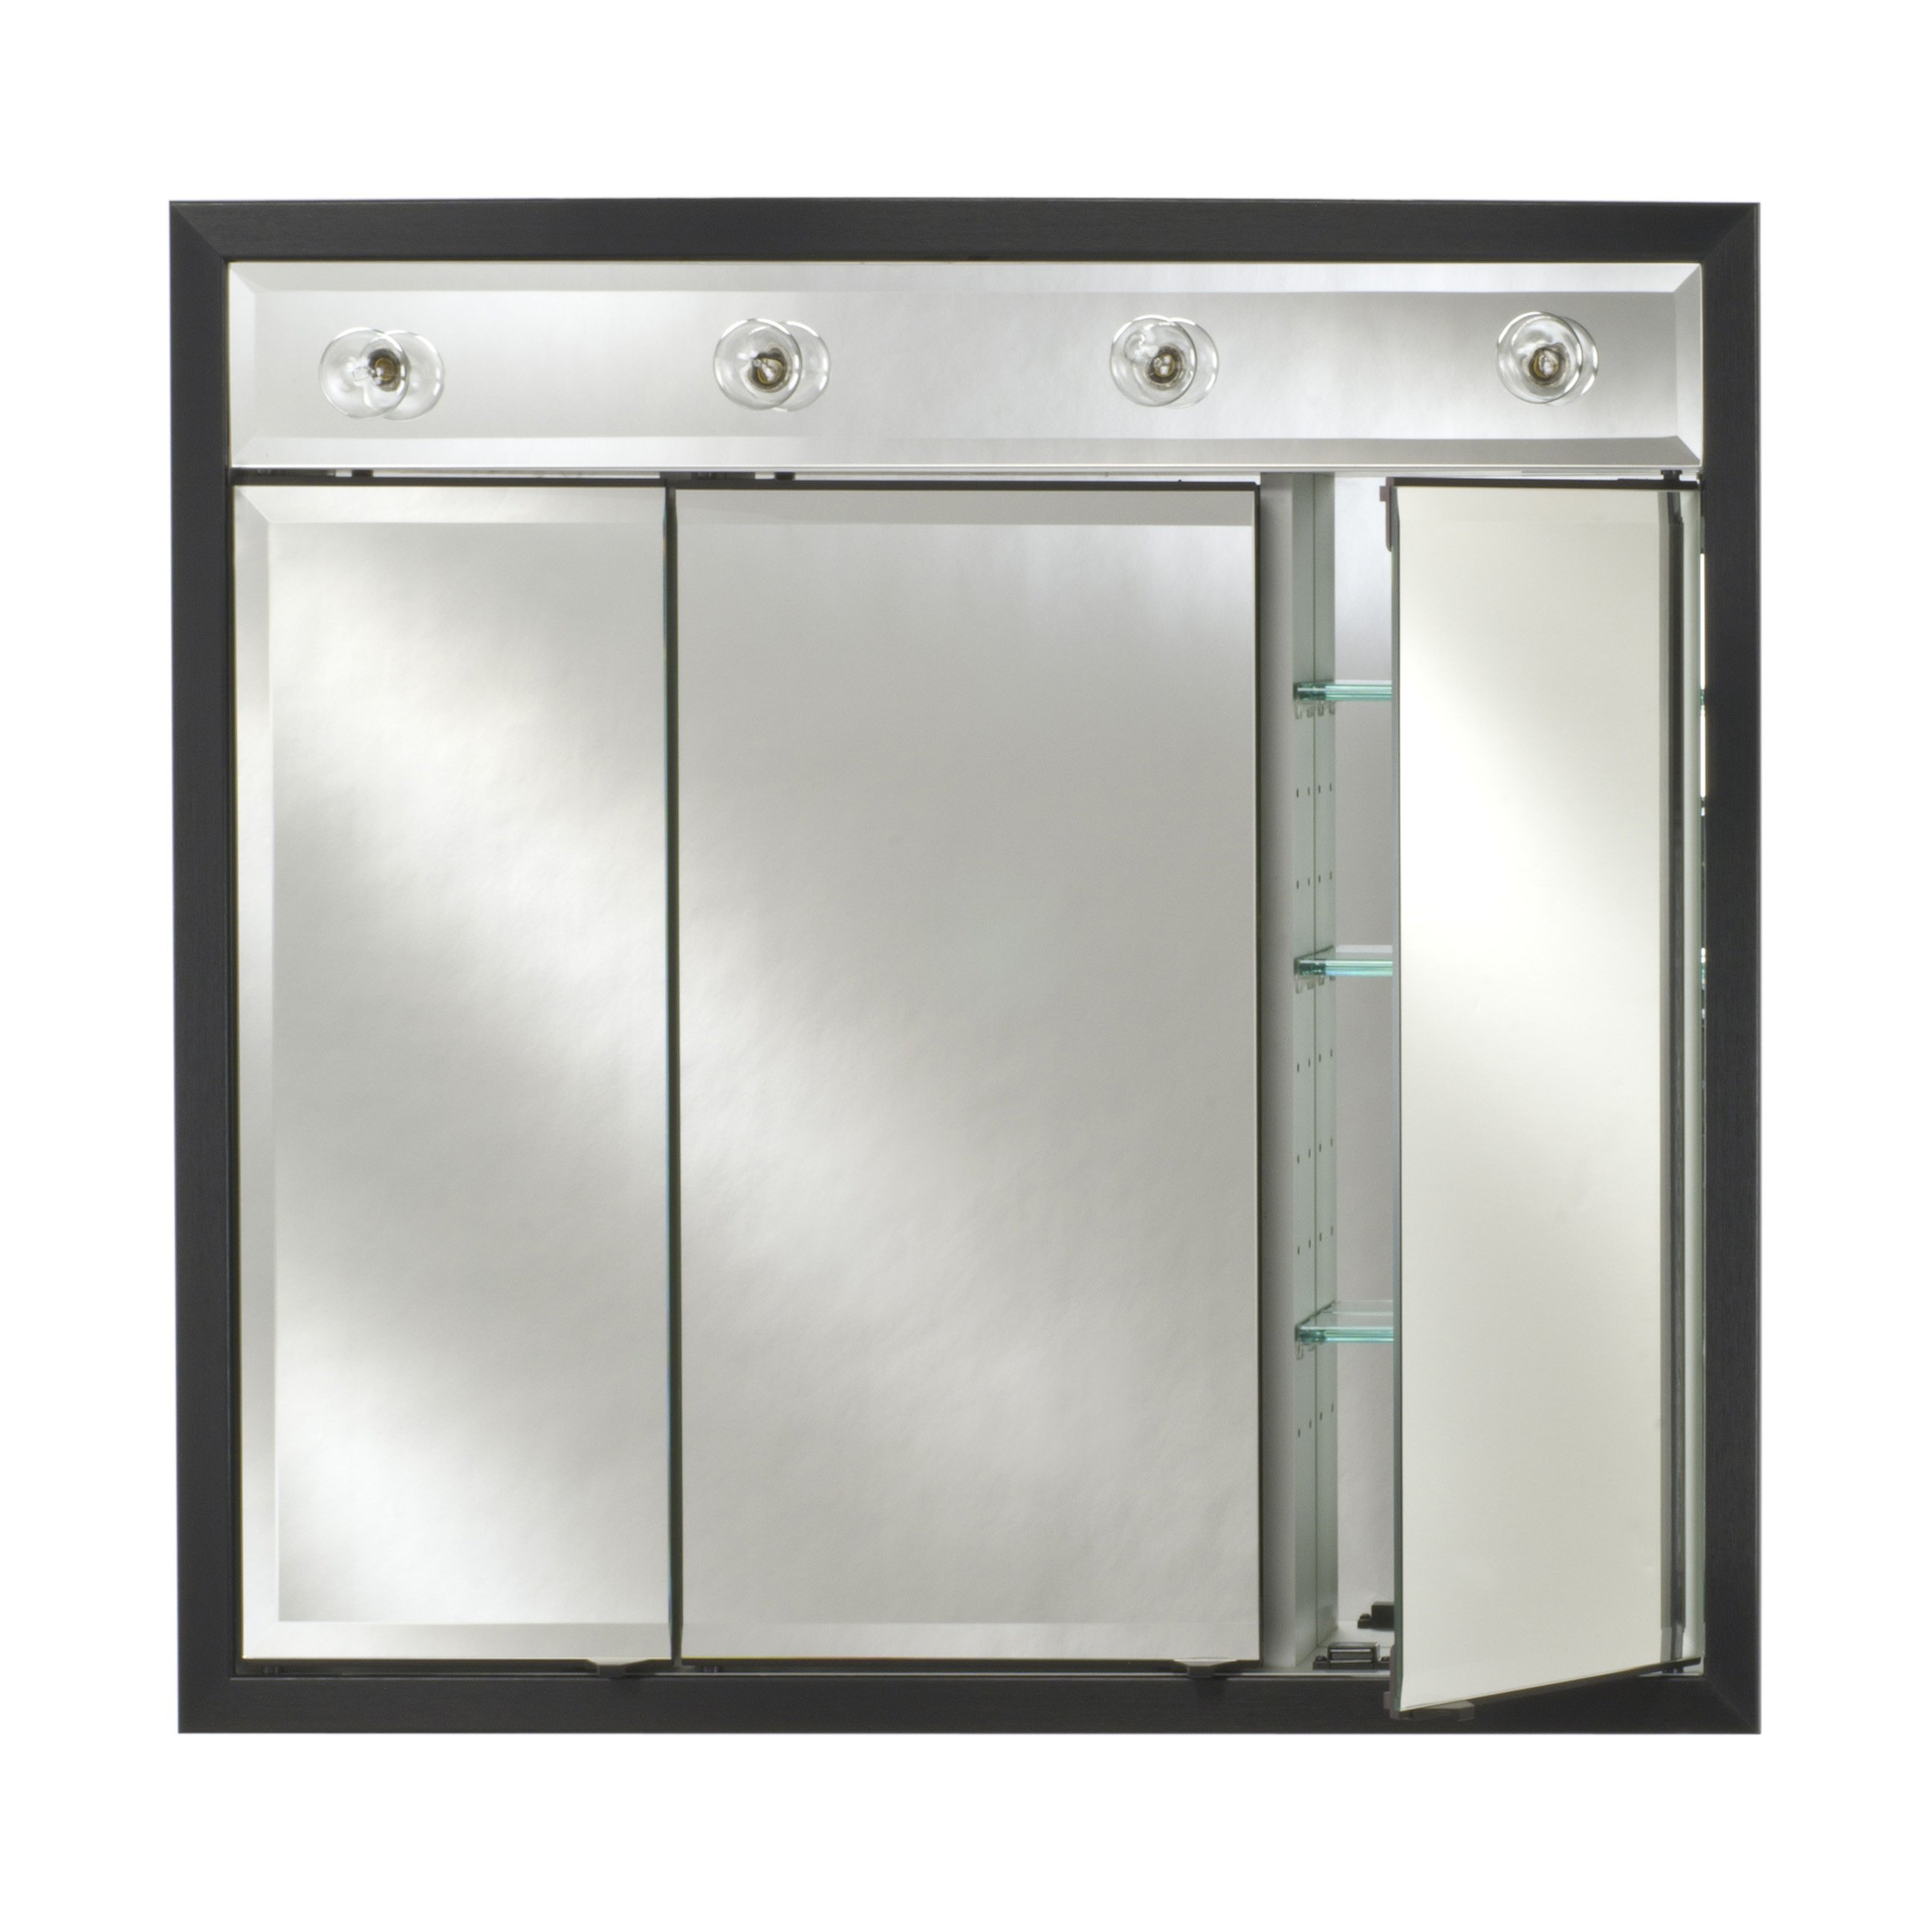 Afina Signature Contemporary Lighted Triple Door 34W x 34H in. Surface Mount Medicine Cabinet